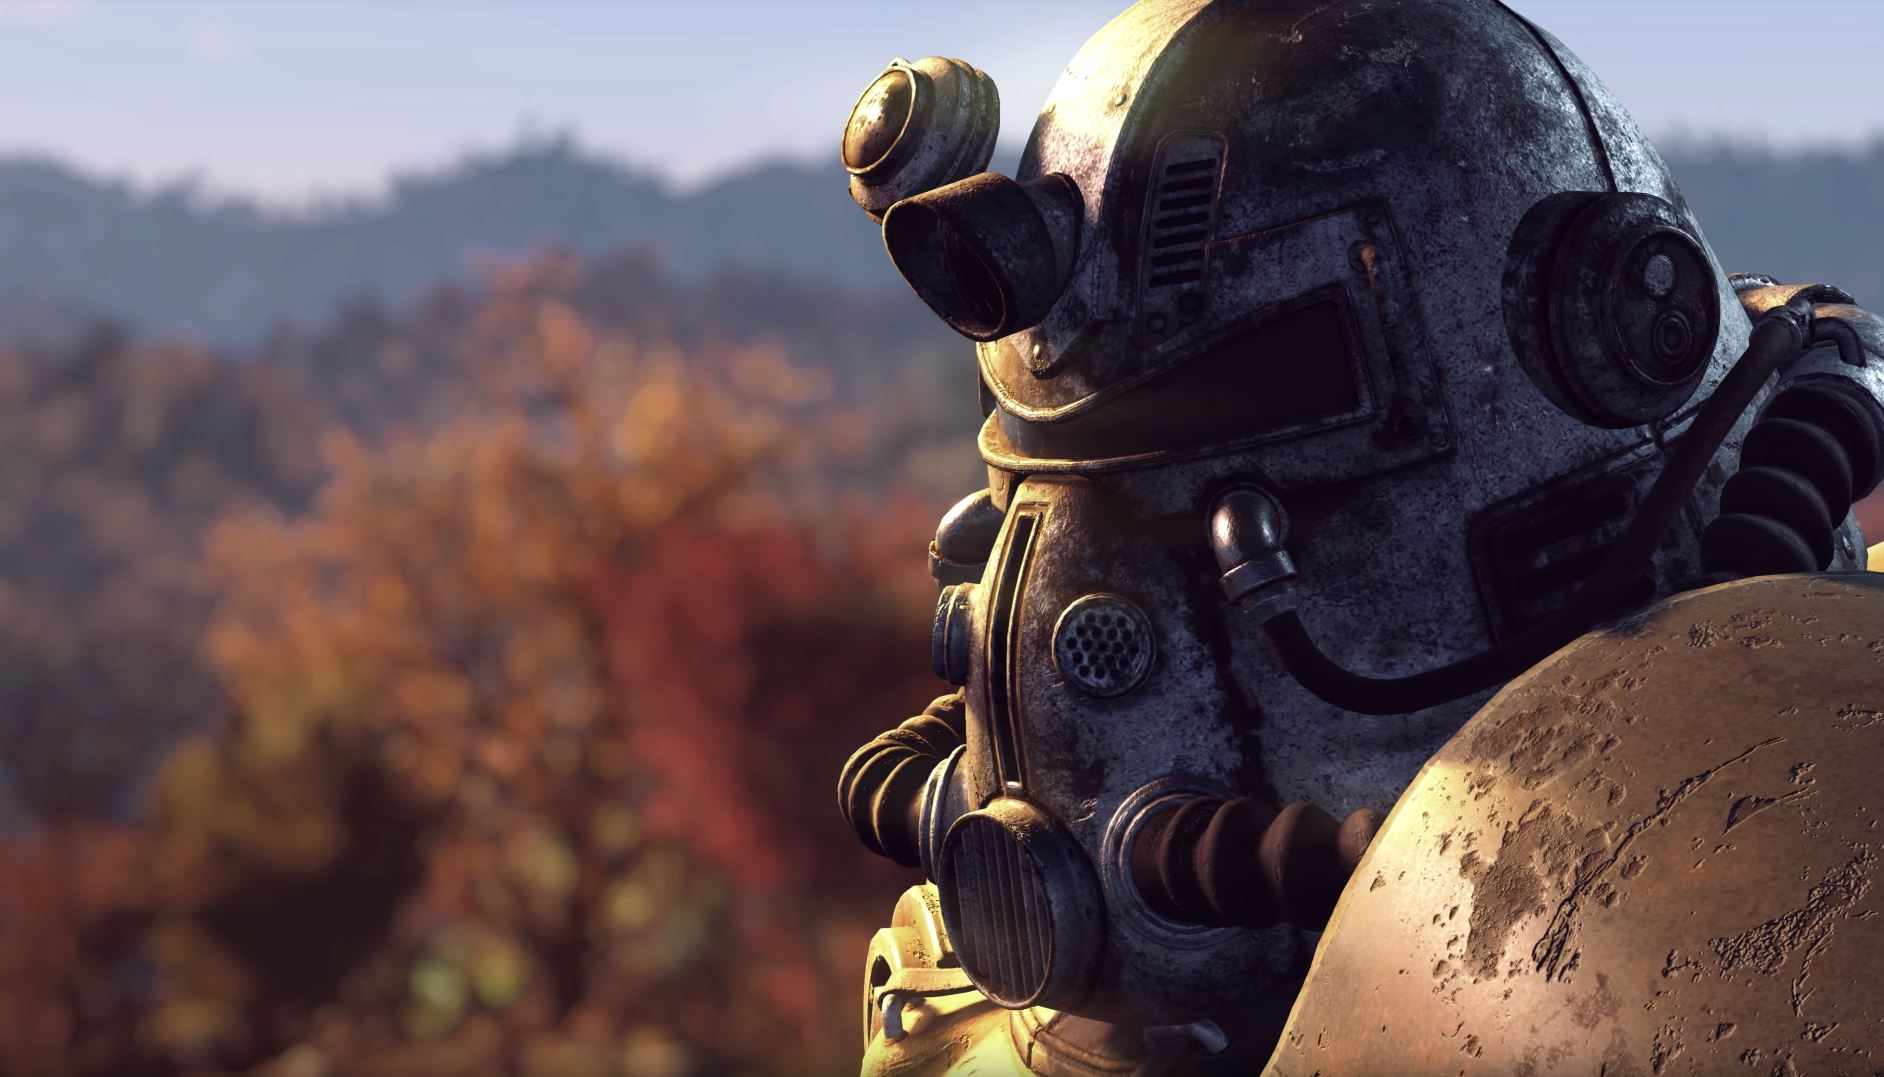 Fallout 76 certainly catches some eyes. The proposed multiplayer aspect is interesting as the developers are intending to make encounters with other players rare and special - Image Credit:  Bethesta Softworks via Youtube